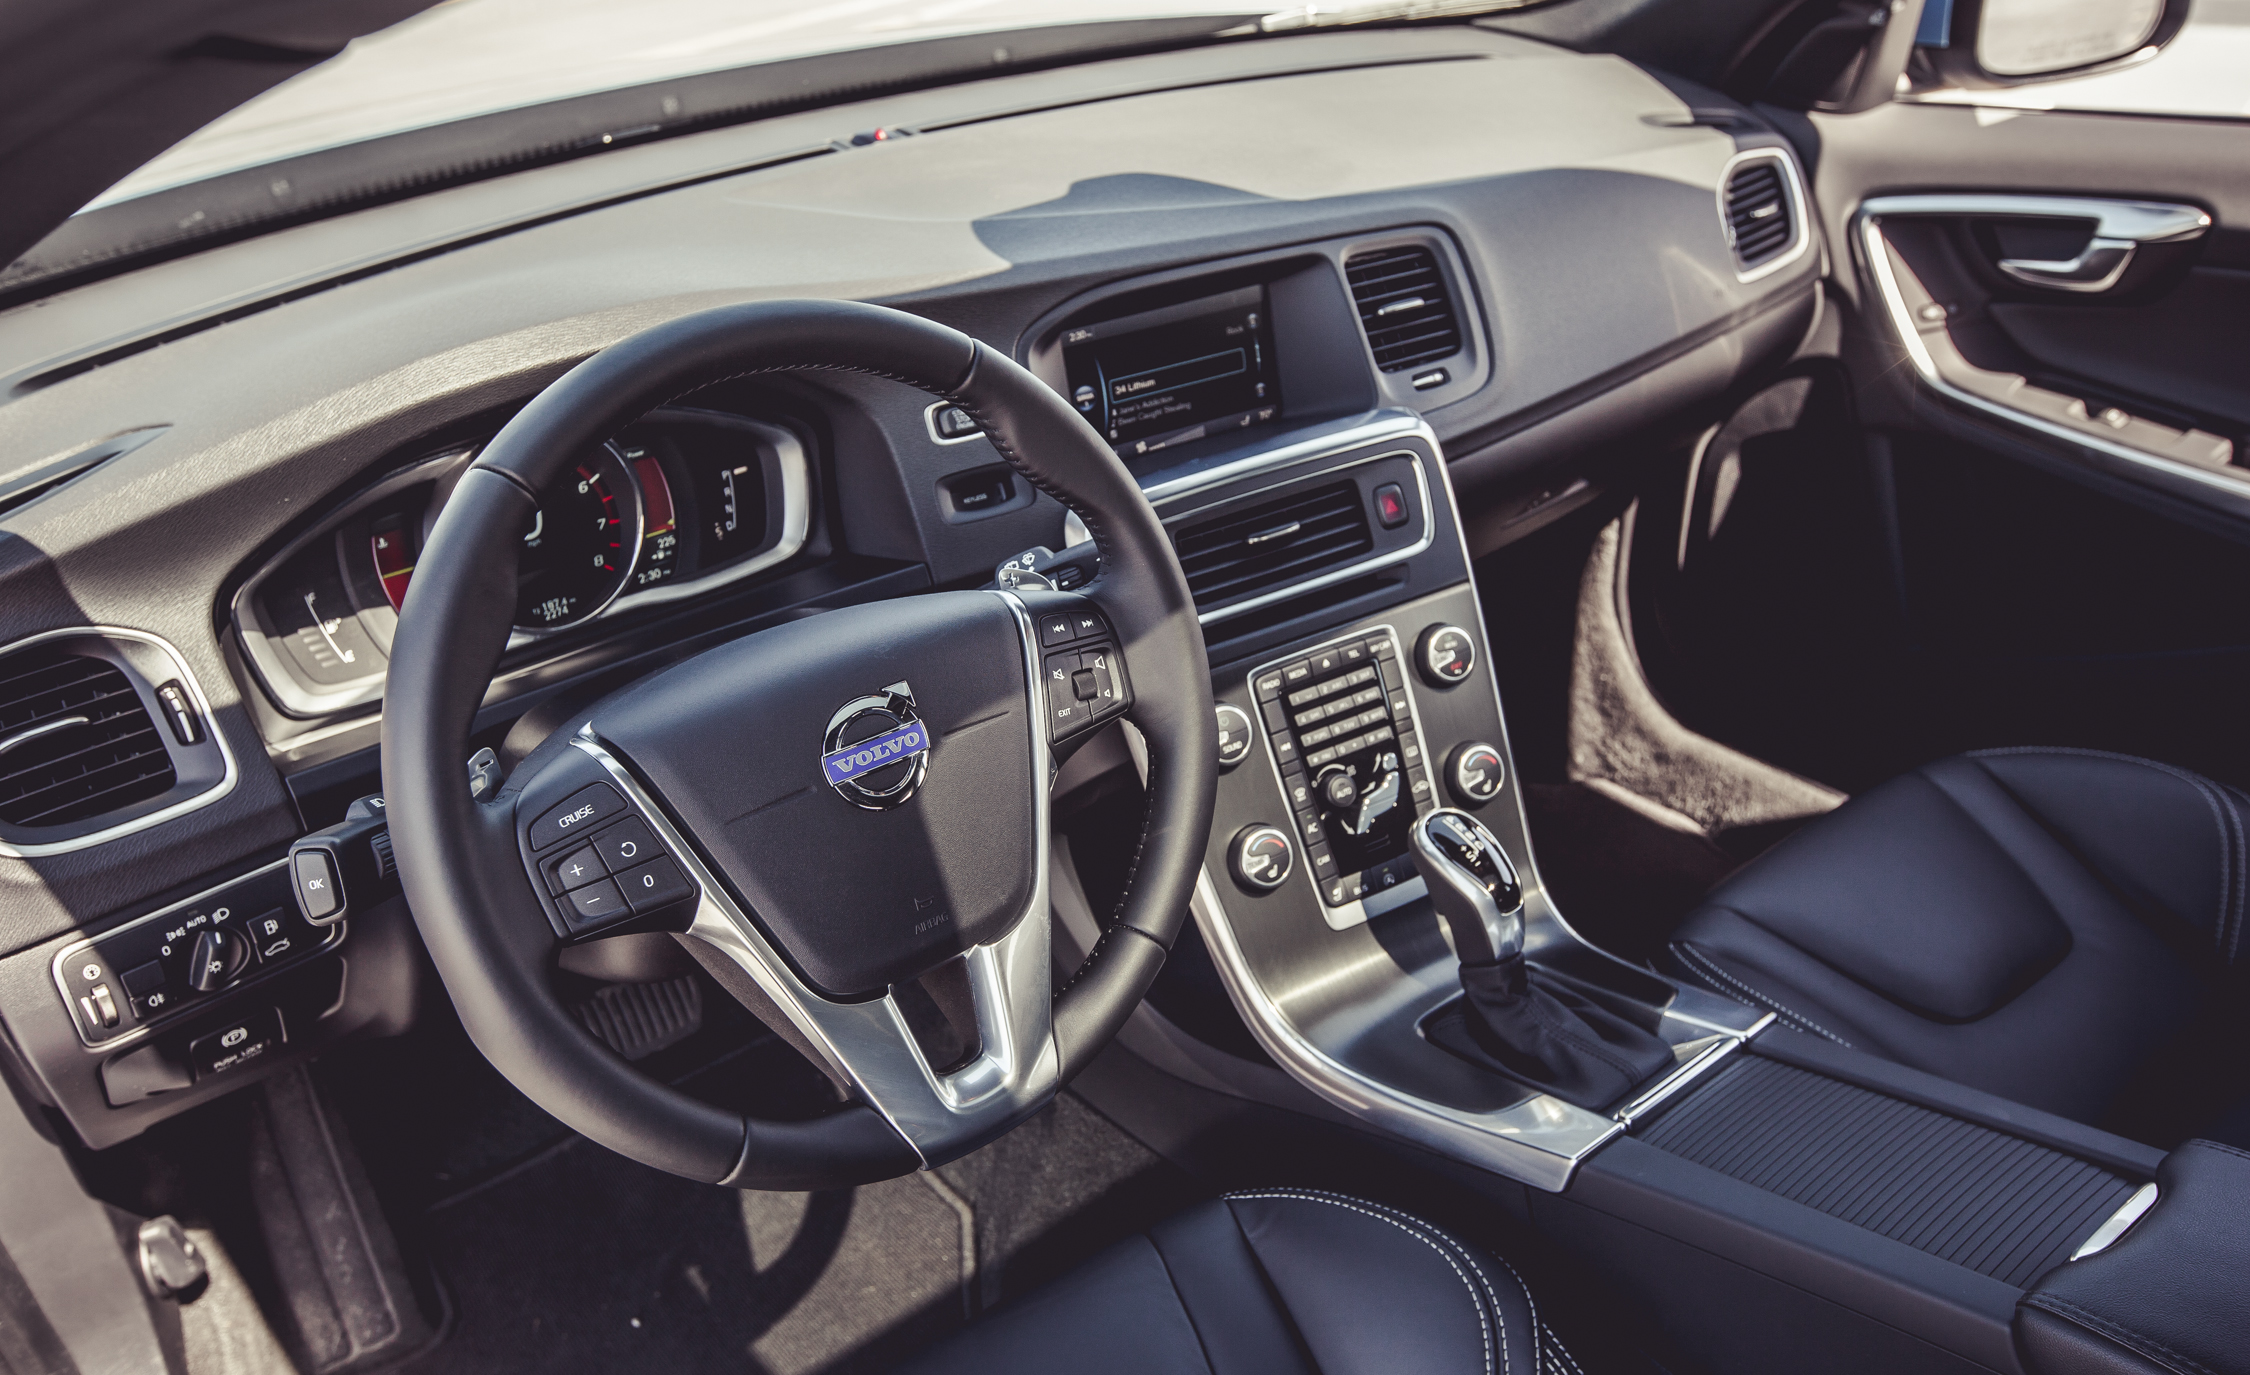 2015 Volvo V60 Interior (Photo 23 of 38)